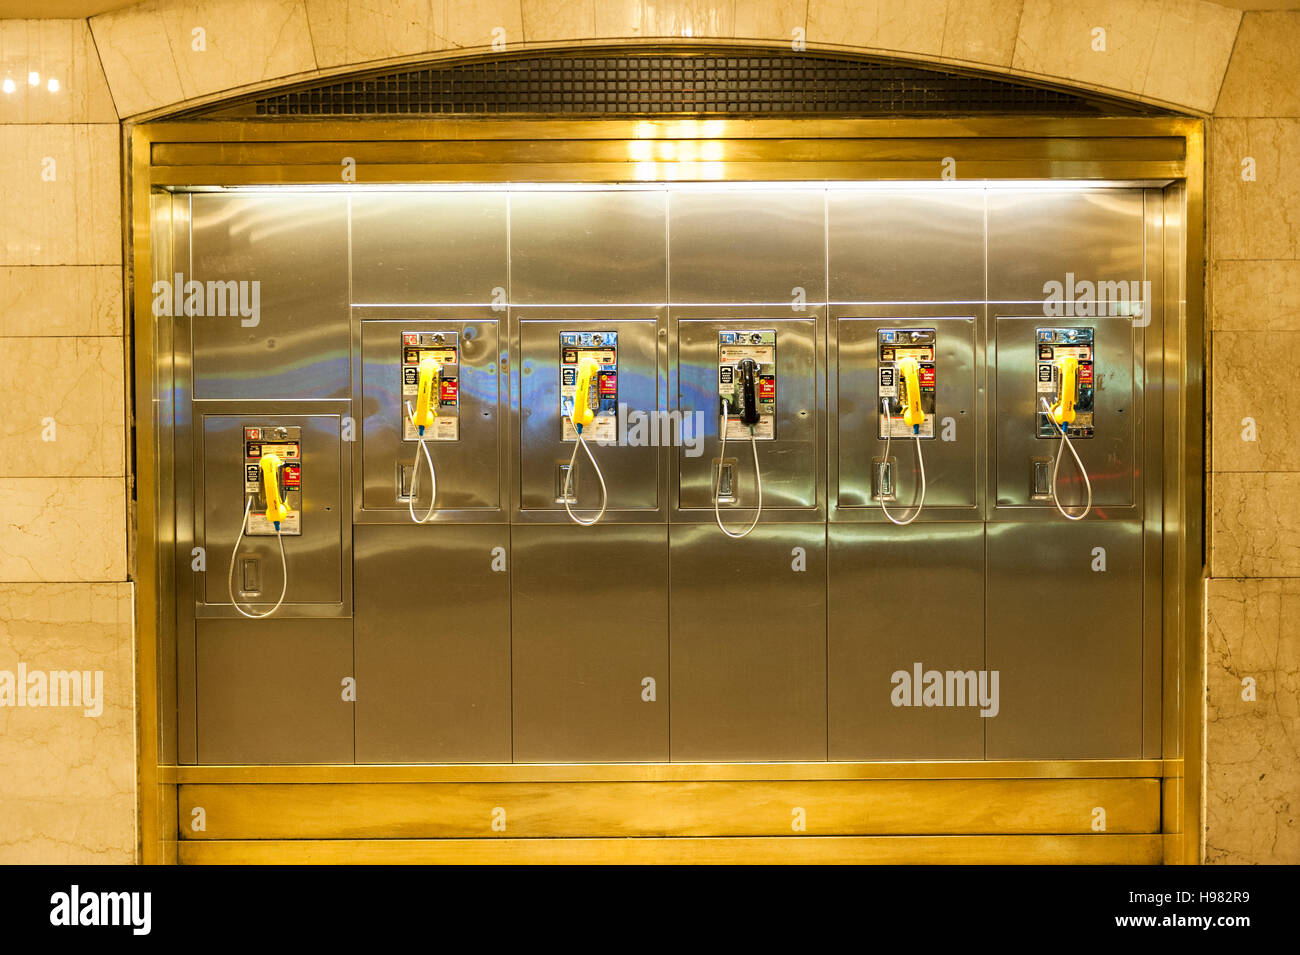 A wall installation of several traditional public pay phones in a row at Grand Central Station, New York City, NY, - Stock Image